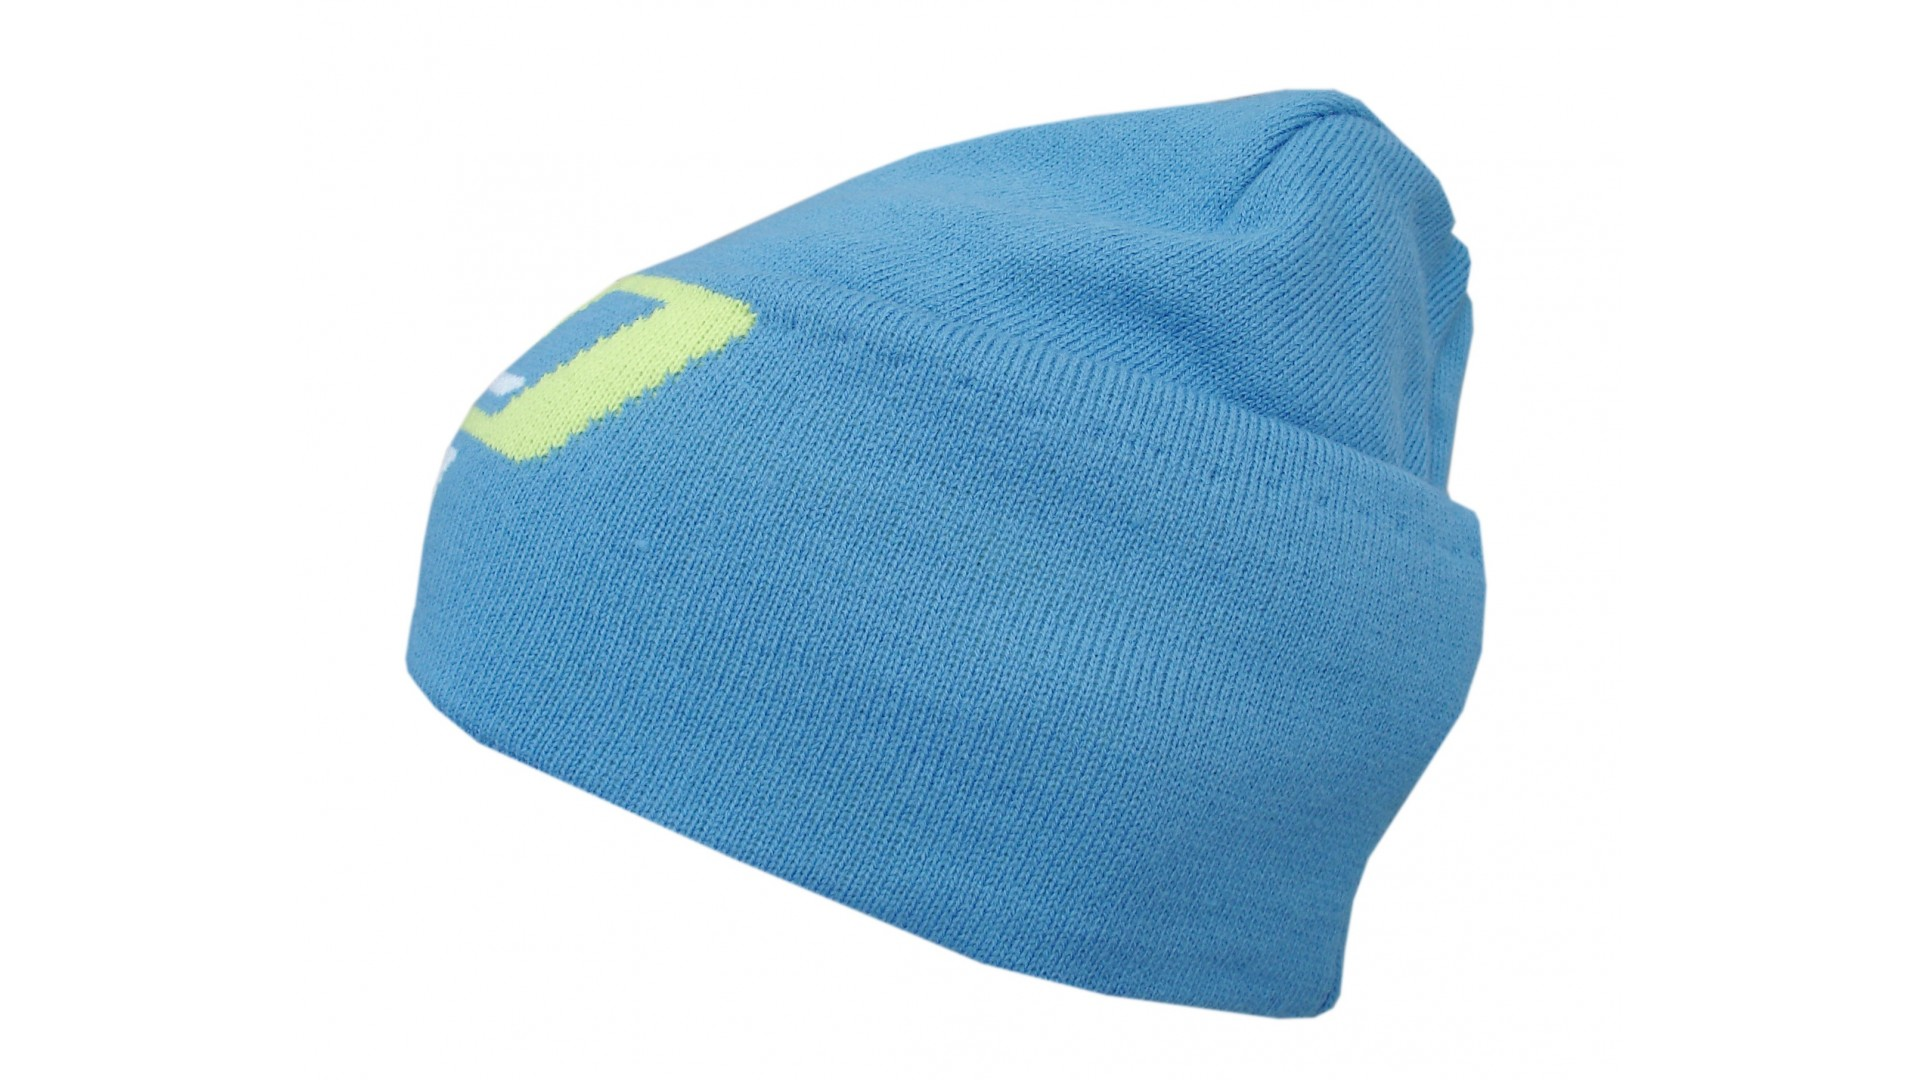 Велошапочка Ghost Beanie cyan/limegreen/white зимняя год 2015